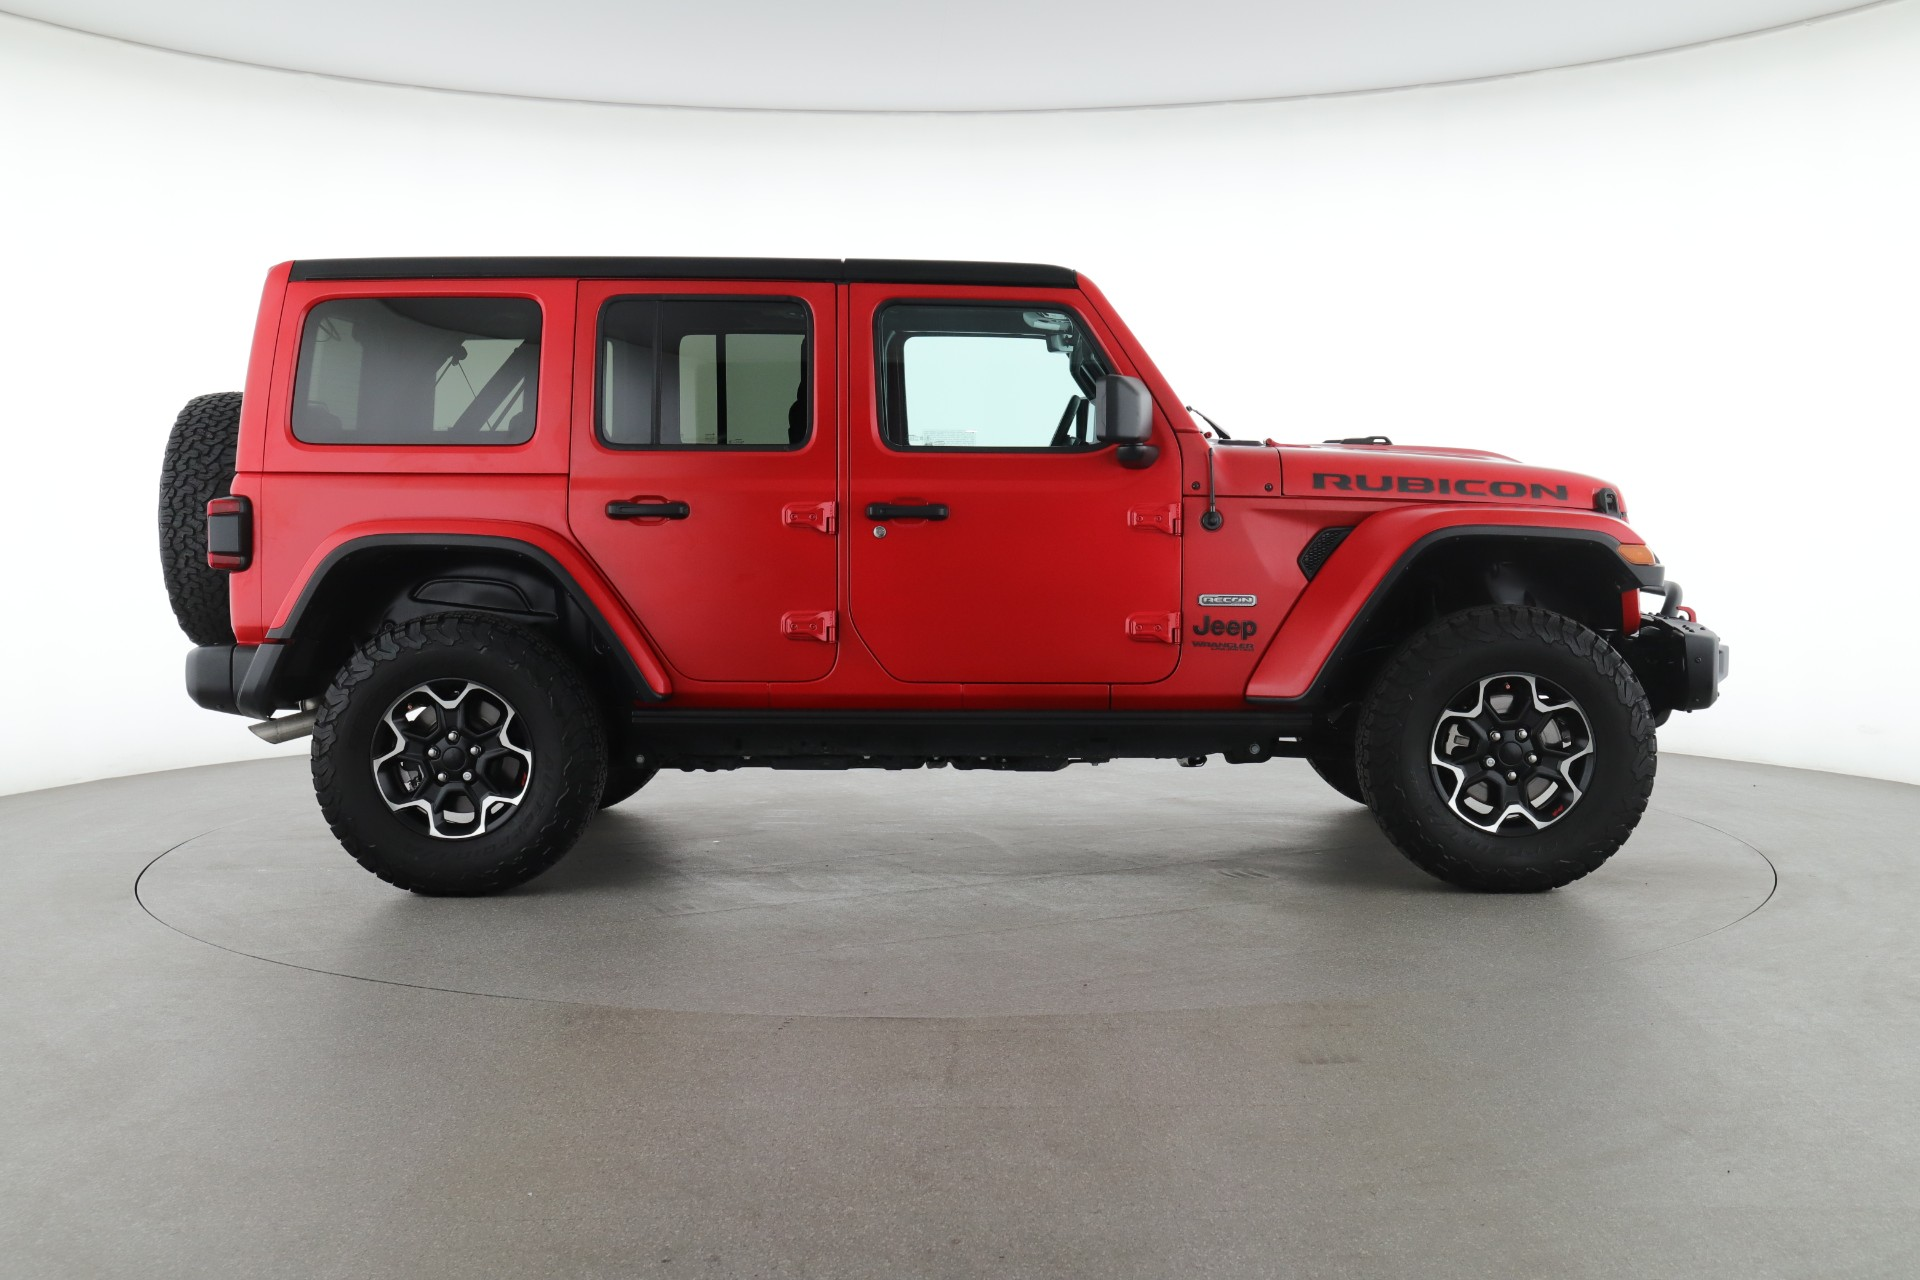 How Much Is a Jeep Wrangler Unlimited? Reviews & Specs